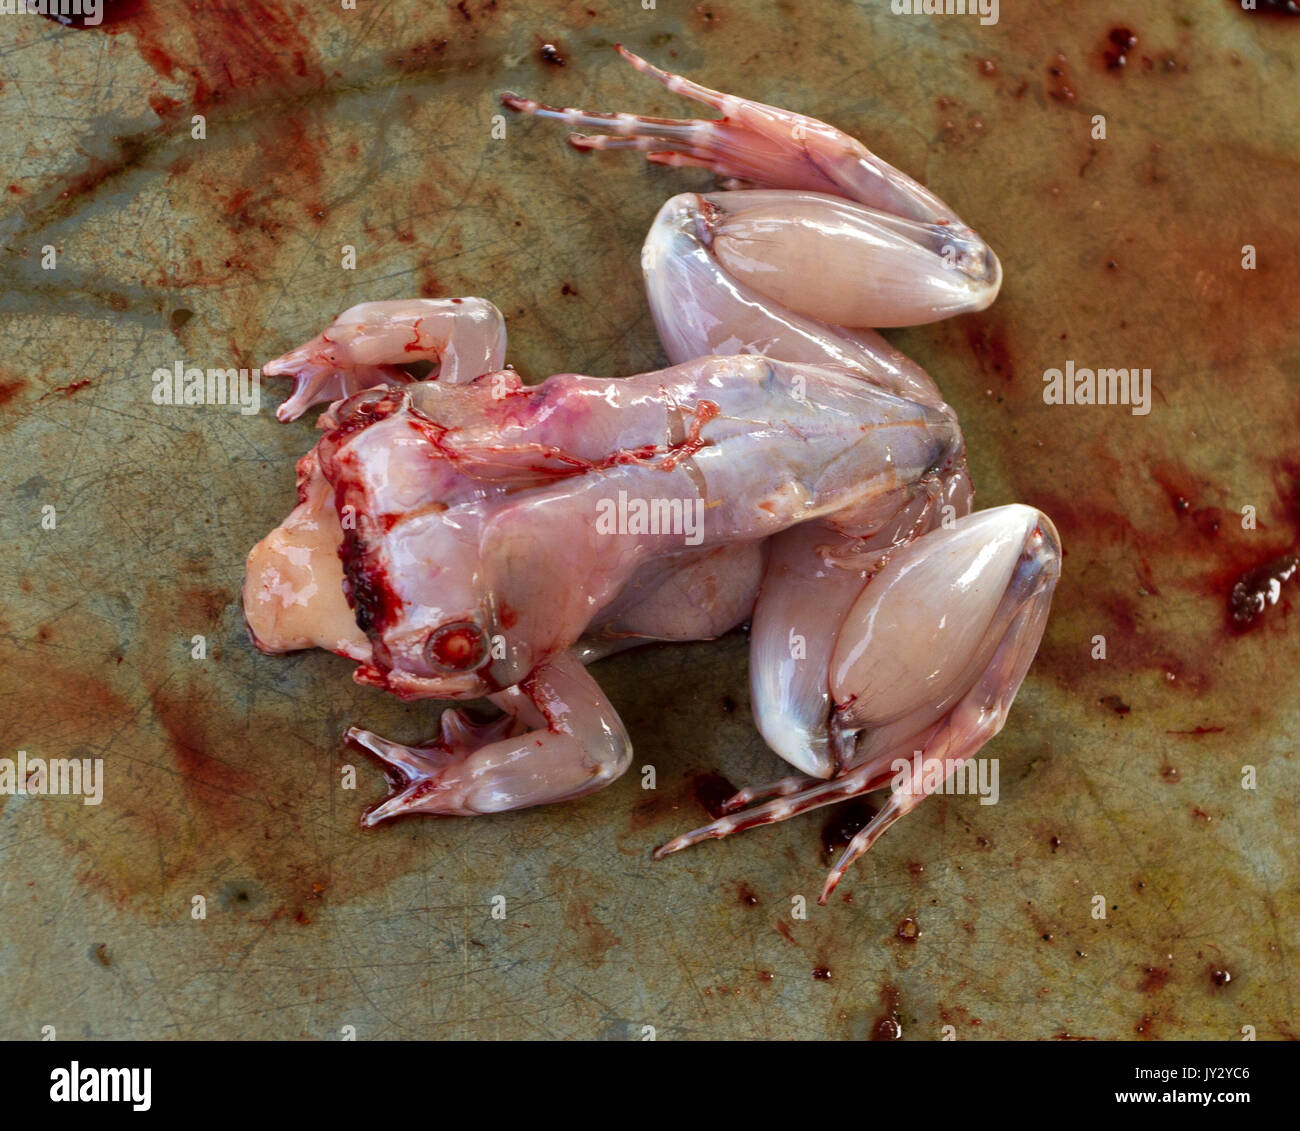 Frog Meat Stock Photos Amp Frog Meat Stock Images Alamy